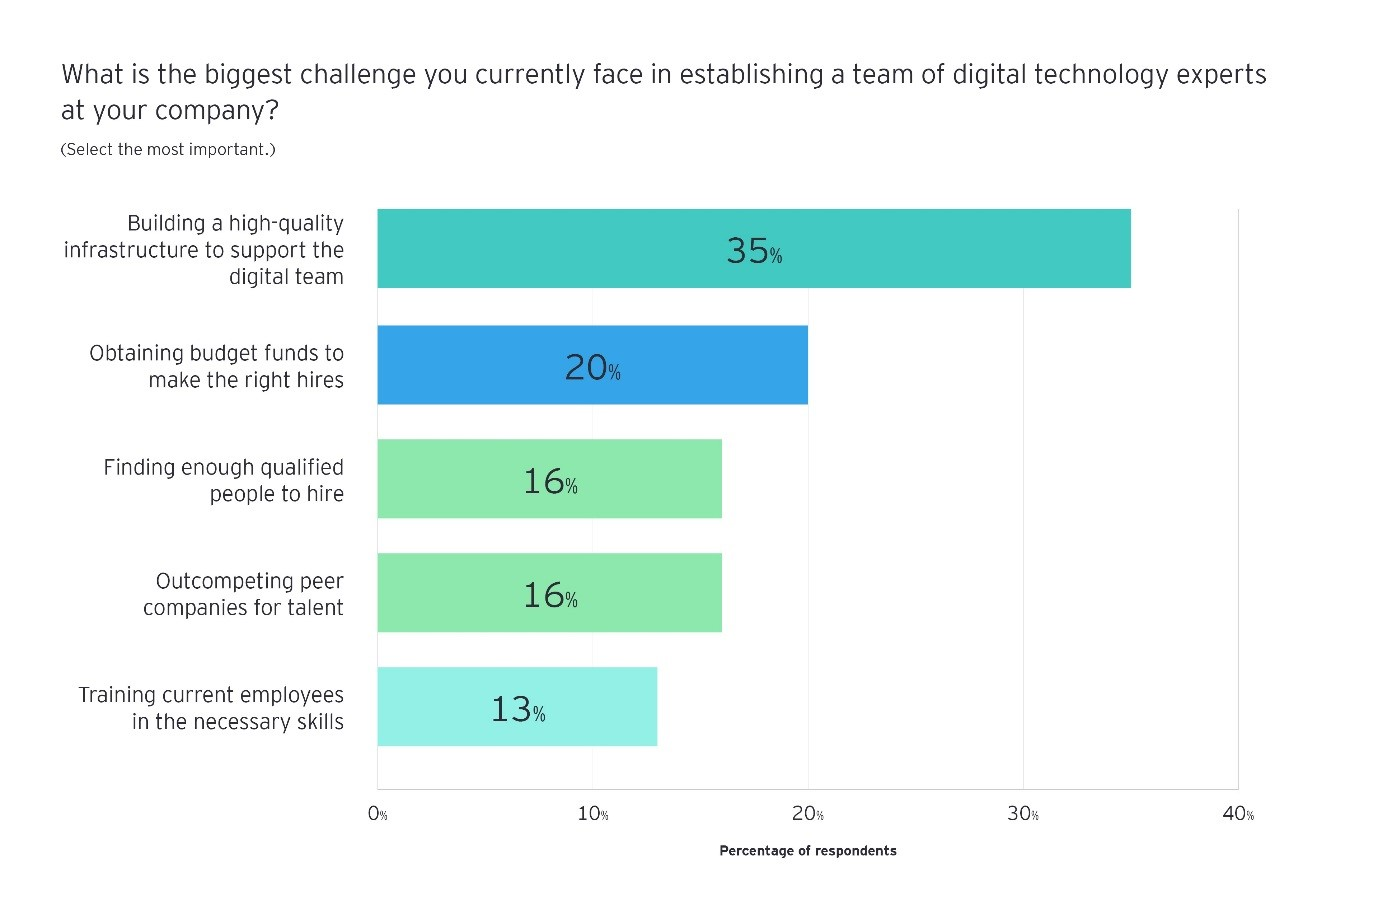 what is the biggest challenge you currently face in establishing a team of digital technology experts at your company